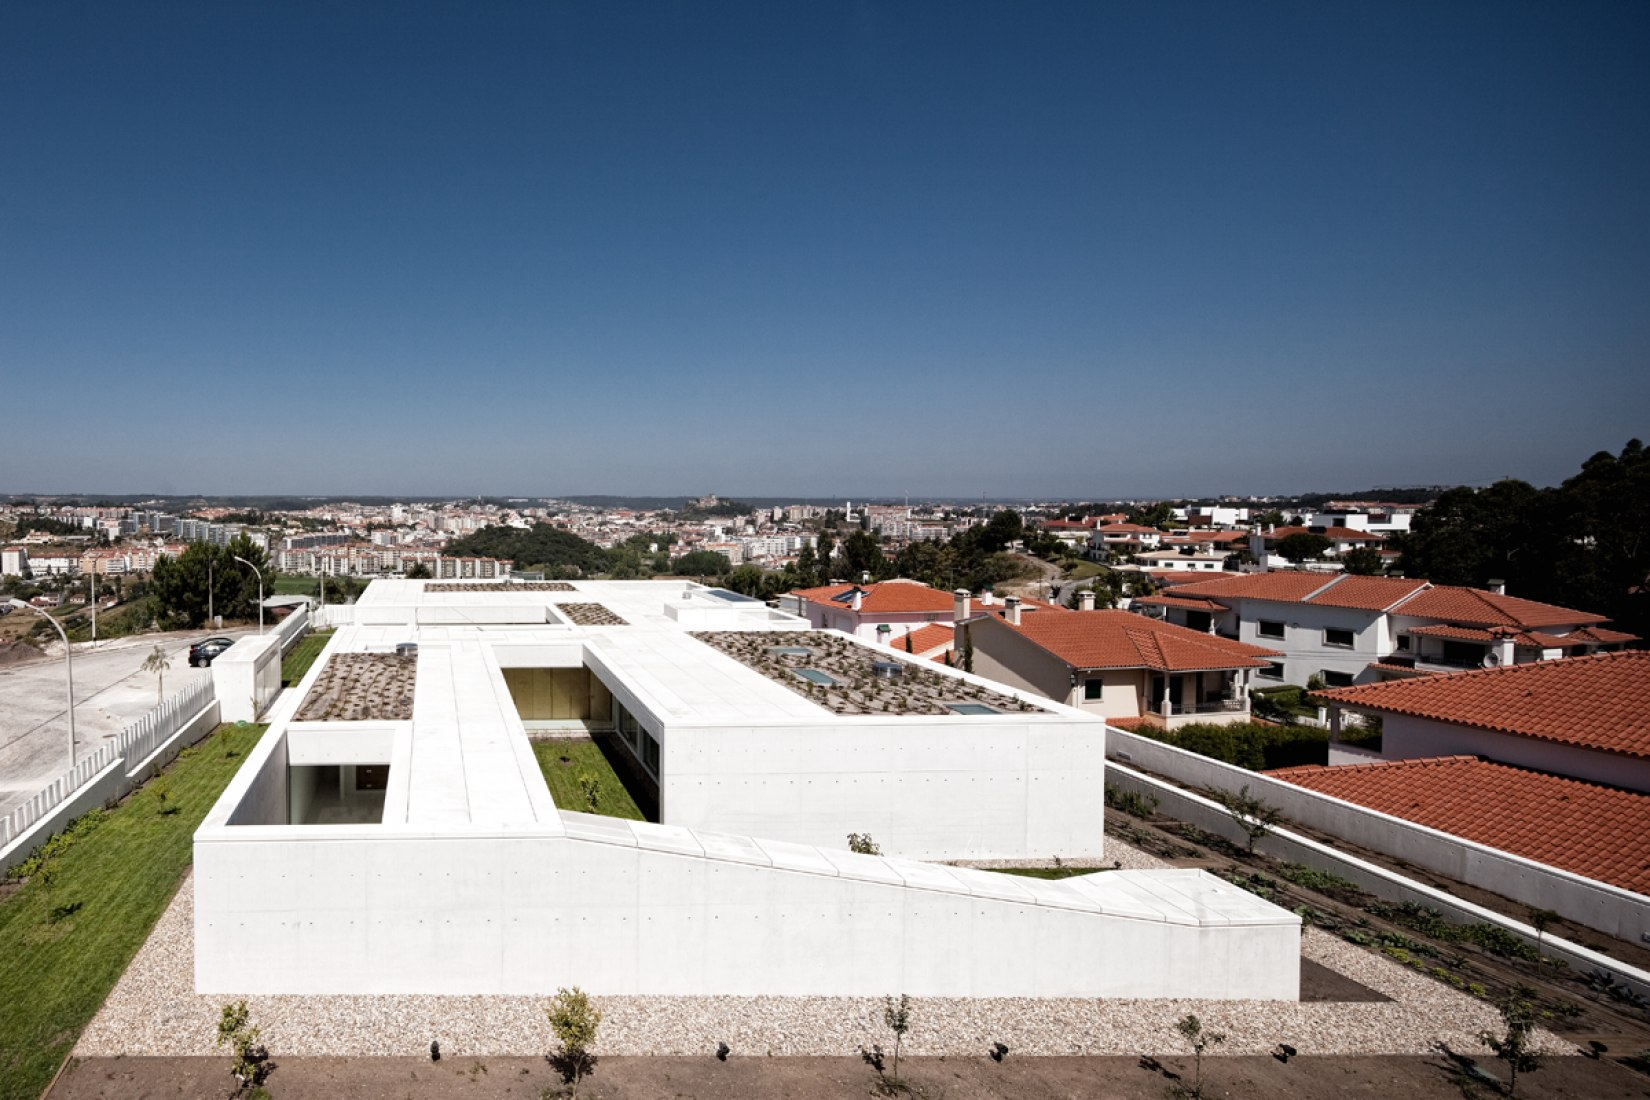 House in Leiria by ARX Portugal. Photography © FG+SG - Fotografia de Arquitectura.